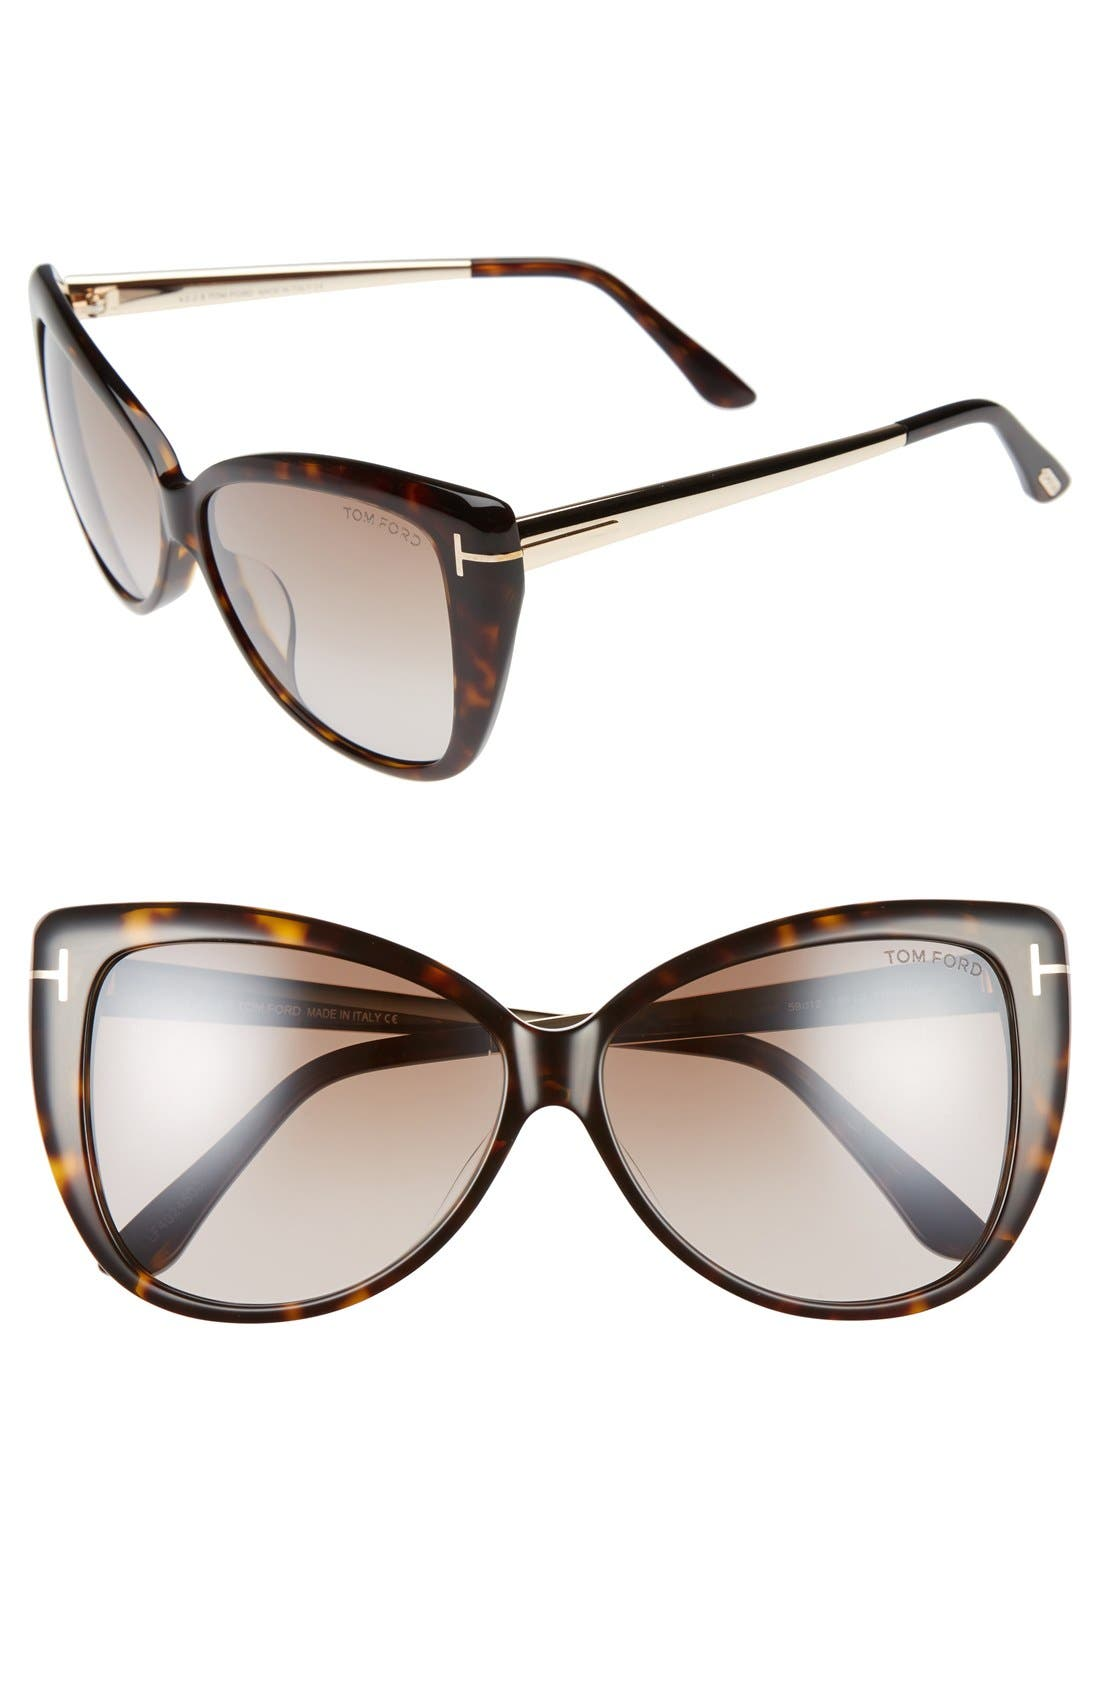 Main Image - Tom Ford Reveka 59mm Special Fit Butterfly Sunglasses